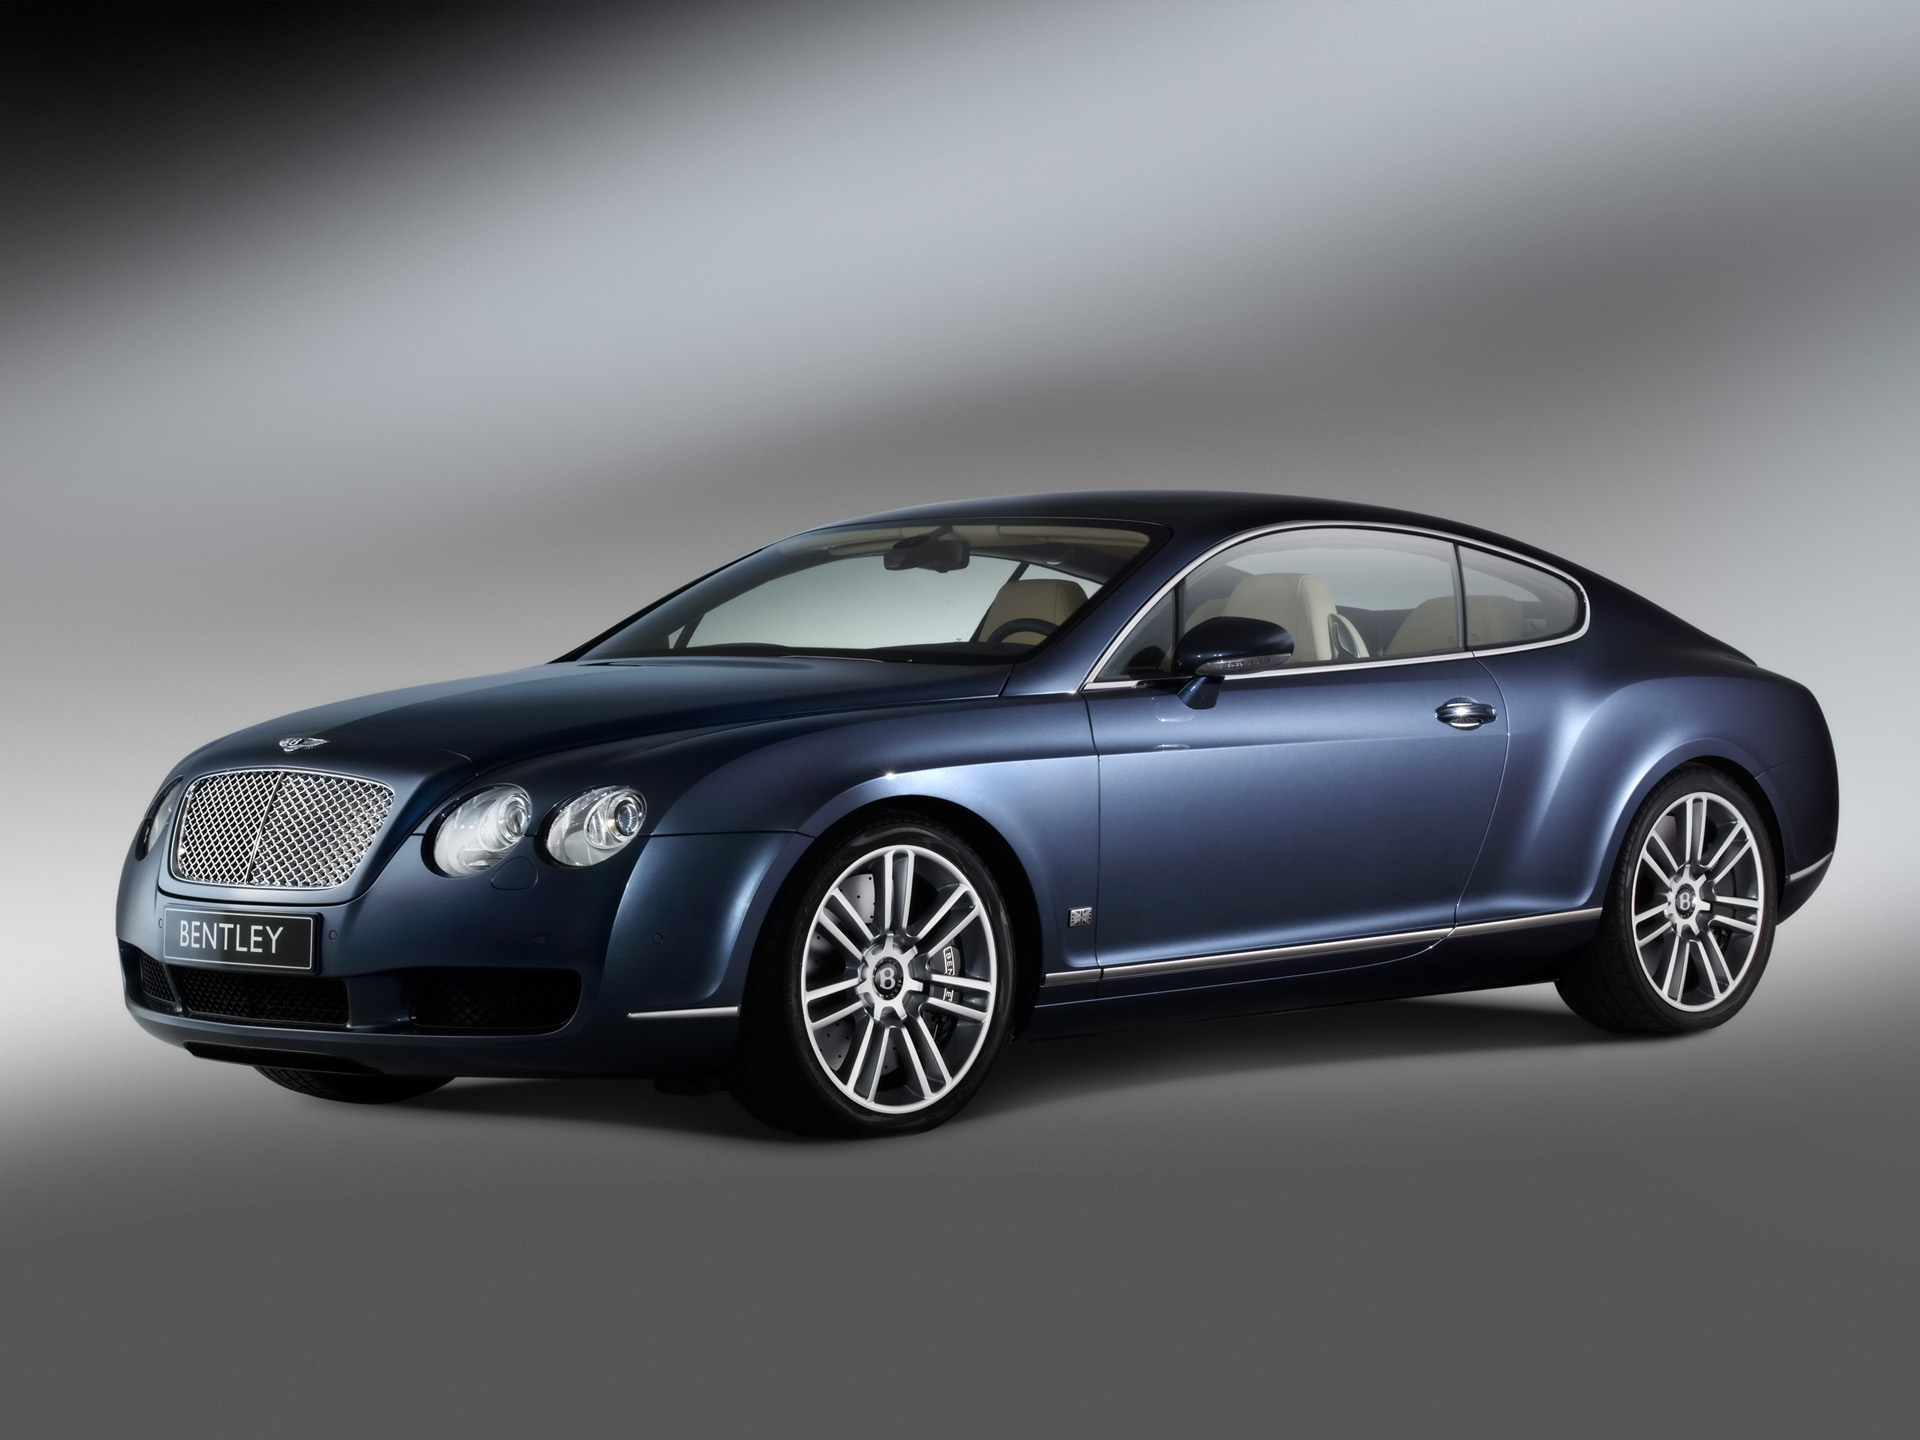 Bentley Continental GT photo 34831